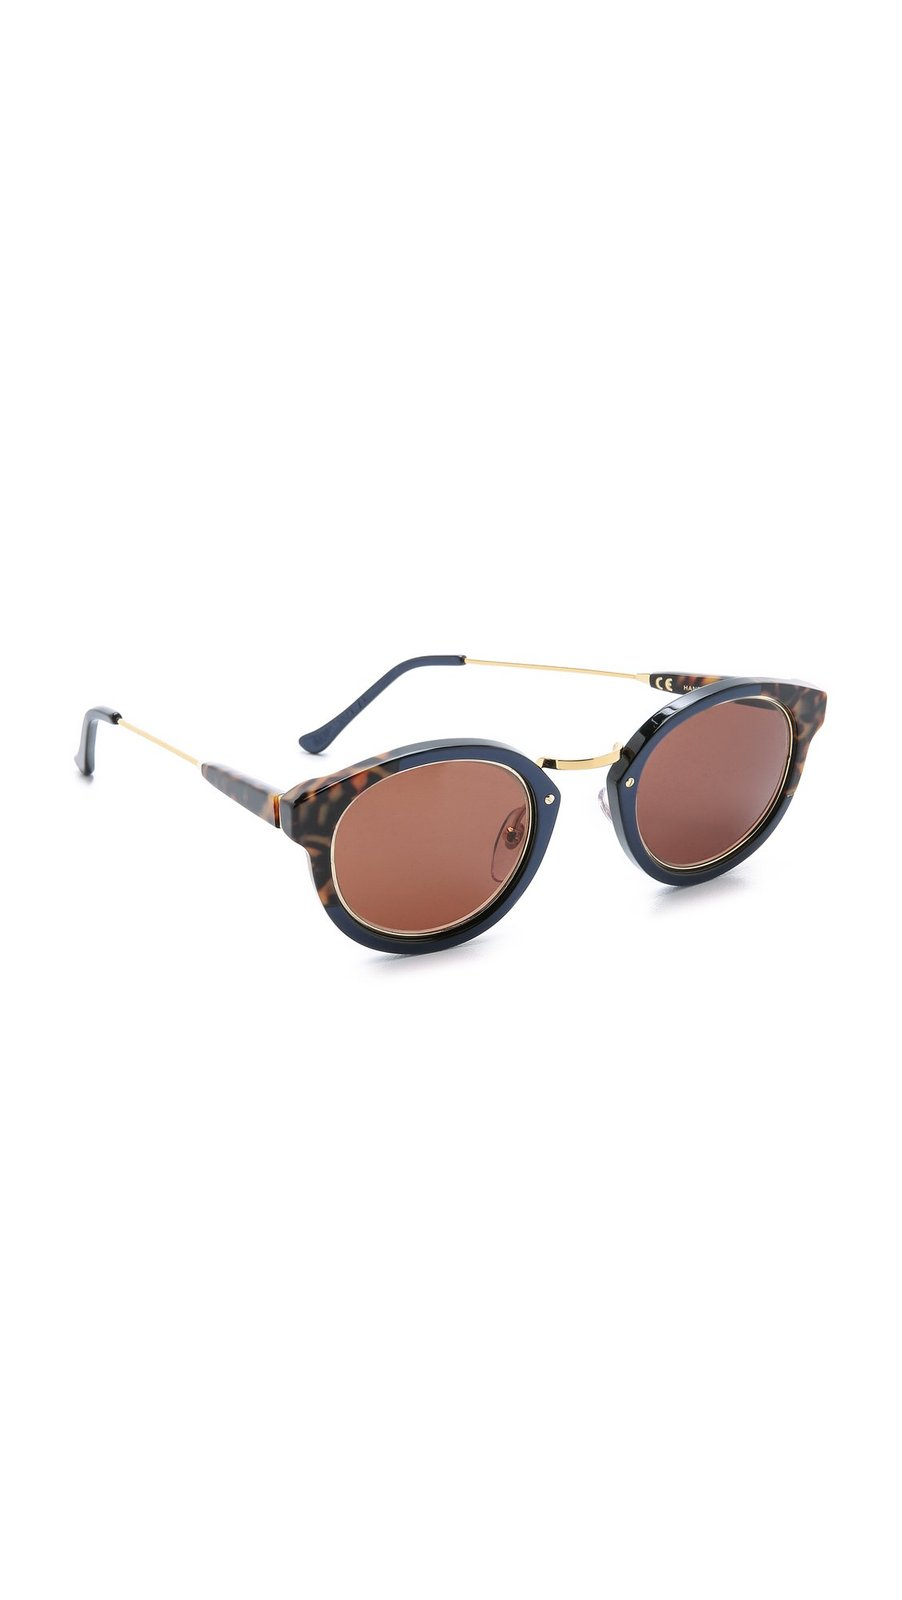 Super Sunglasses Women's Panama Costiera Sunglasses, Havana/Brown, One Size